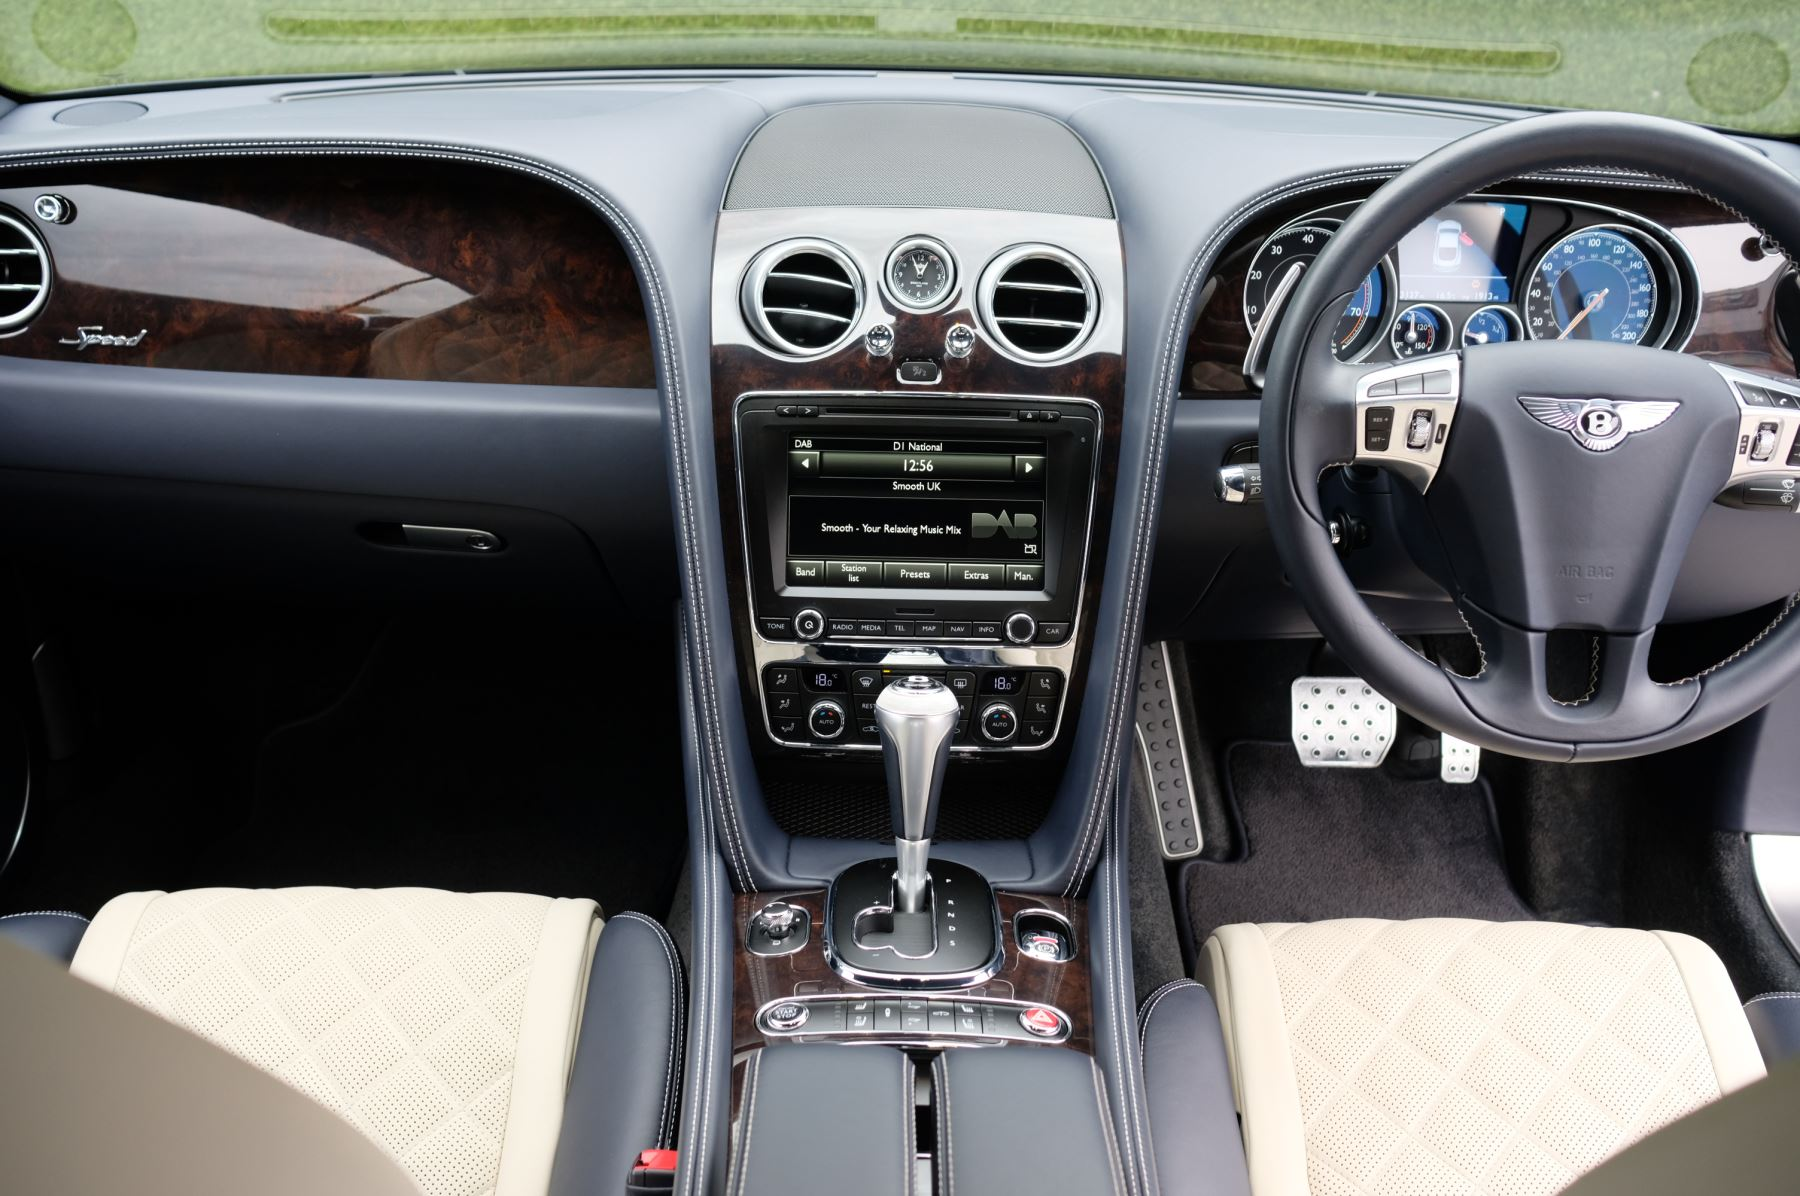 Bentley Continental GT 6.0 W12 [635] Speed - 21 inch Directional Sports Alloys - Ventilated Front Seats with Massage image 13